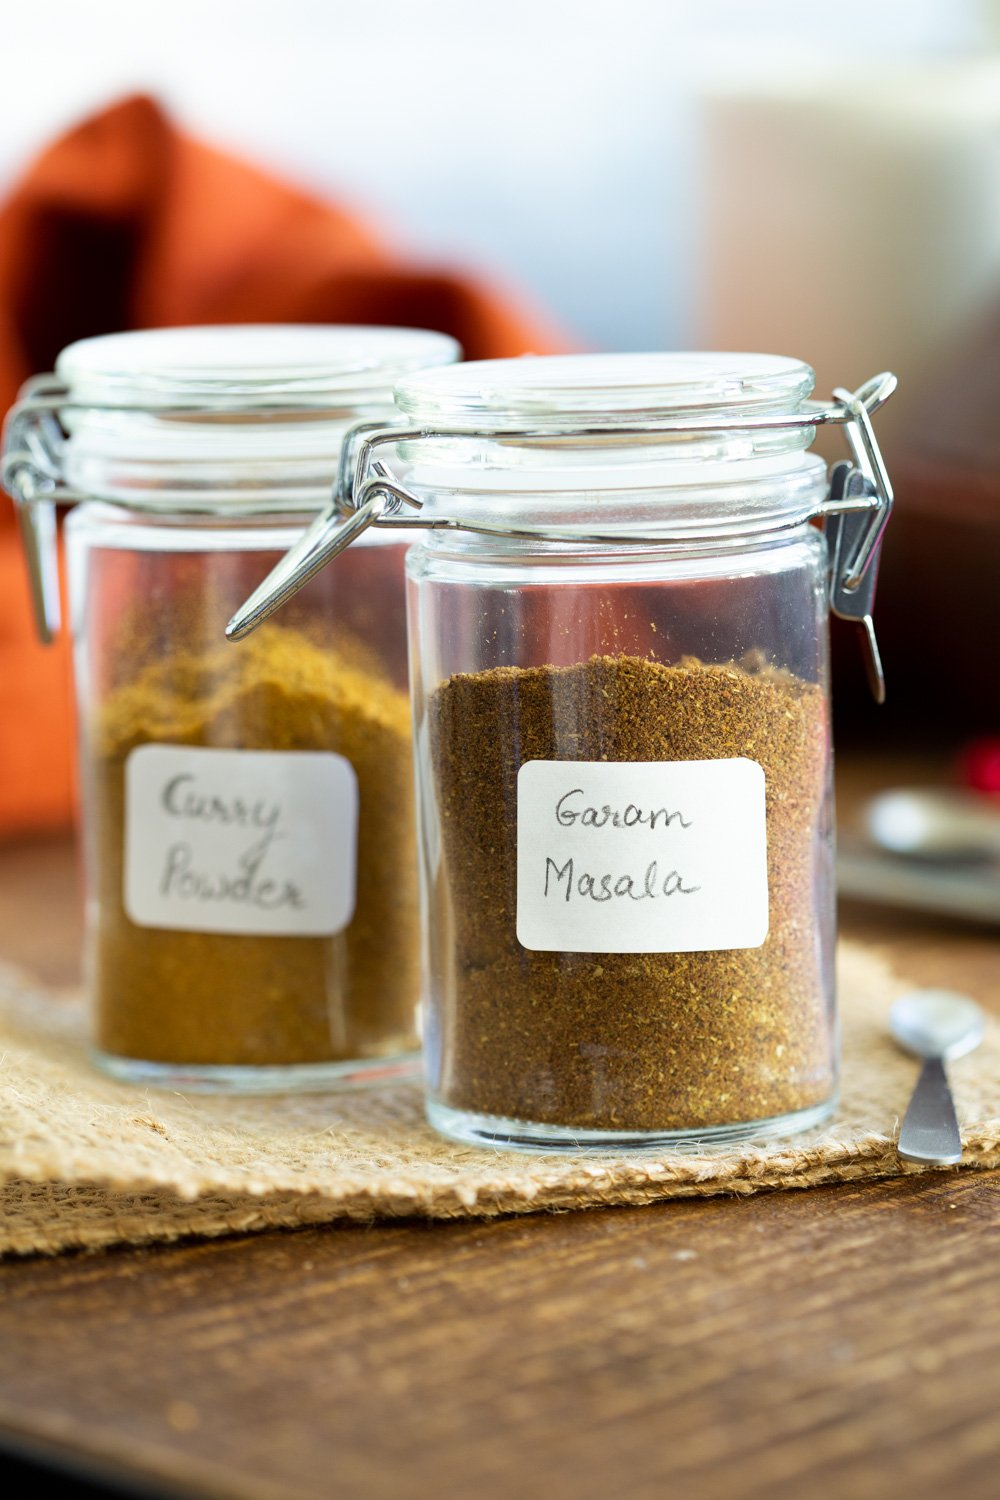 This quick Garam Masala spice blend takes 2 mins to make at home with everyday spices. Use it in Indian dishes, with roasted veggies, in soups, stews, cookies and more #VeganRicha